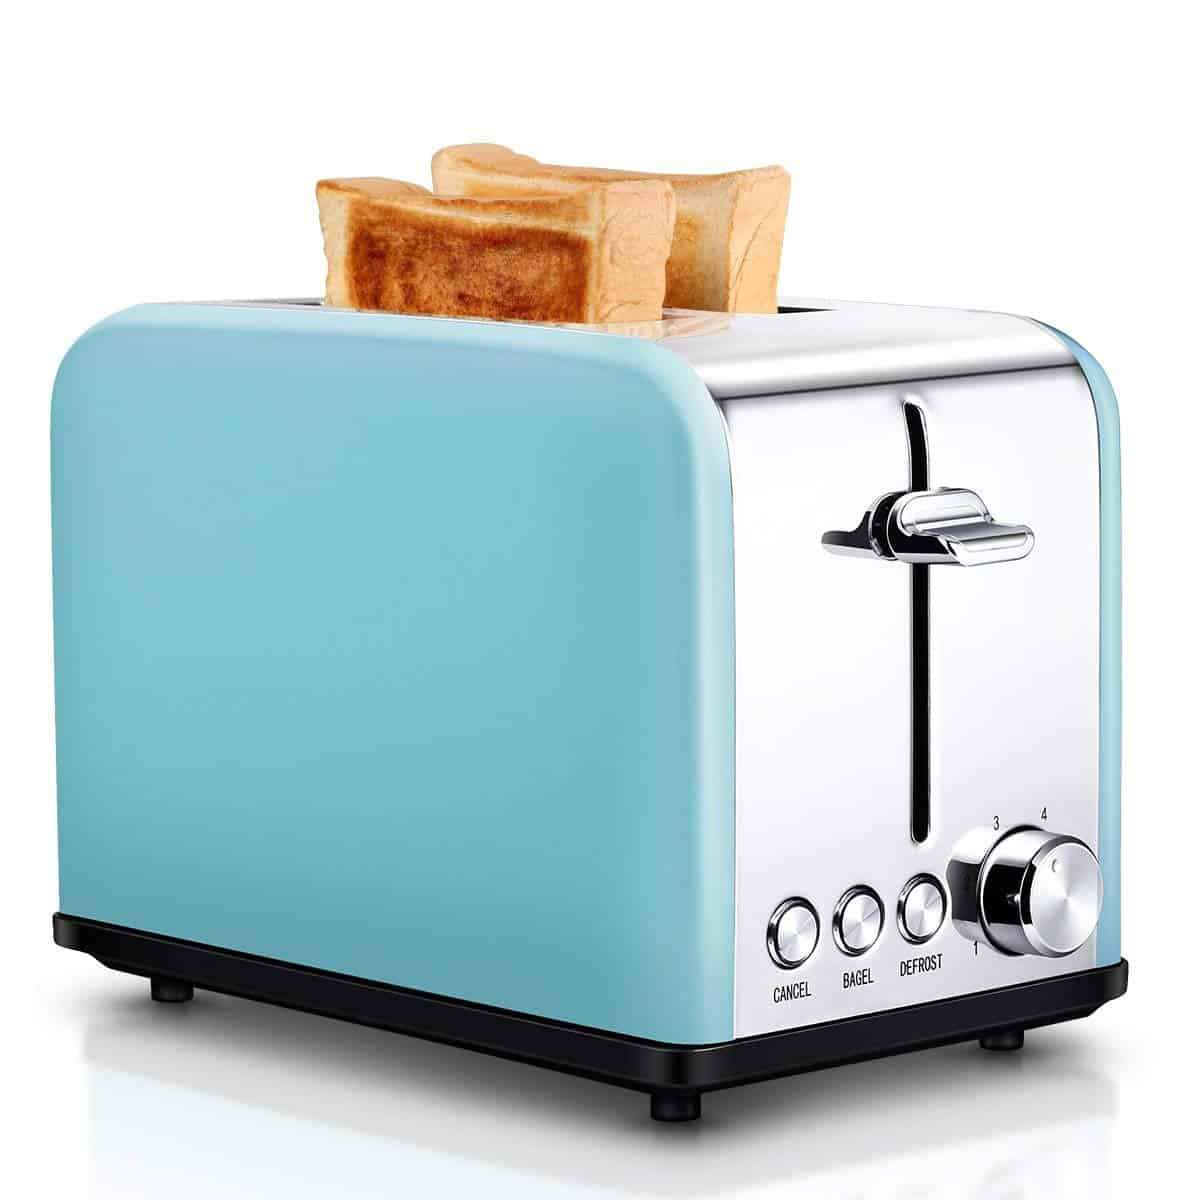 Keemo 2-Slice Retro Toaster | Hey Alexa, Get These 21 Kitchen Appliances On Amazon